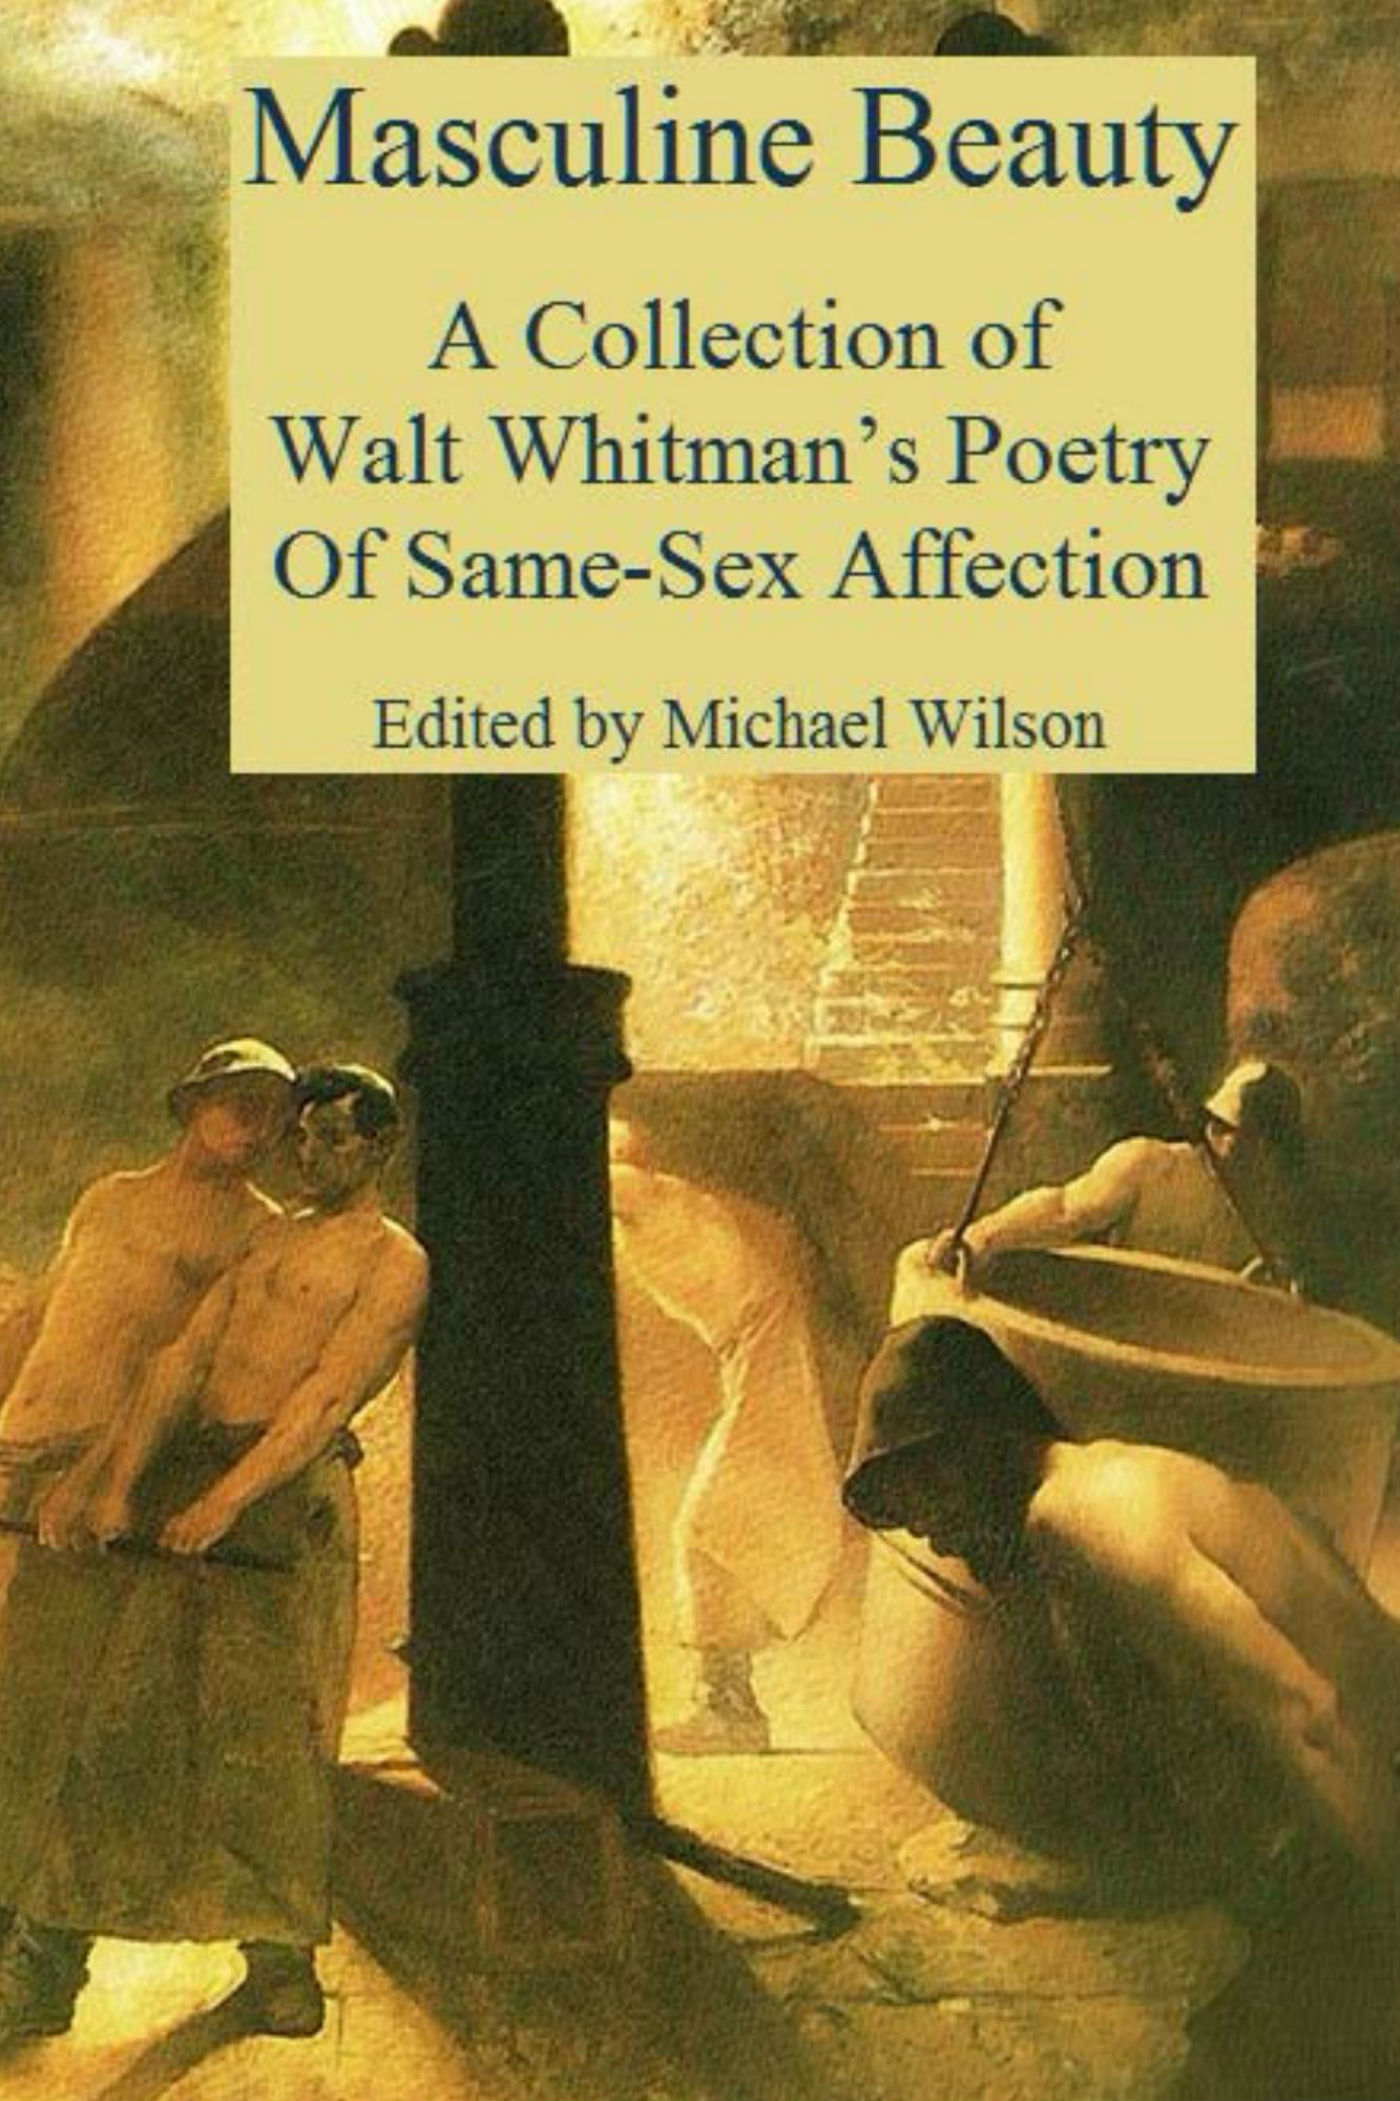 the portrayal of divinity sexuality and the self in whitmans poem song of myself